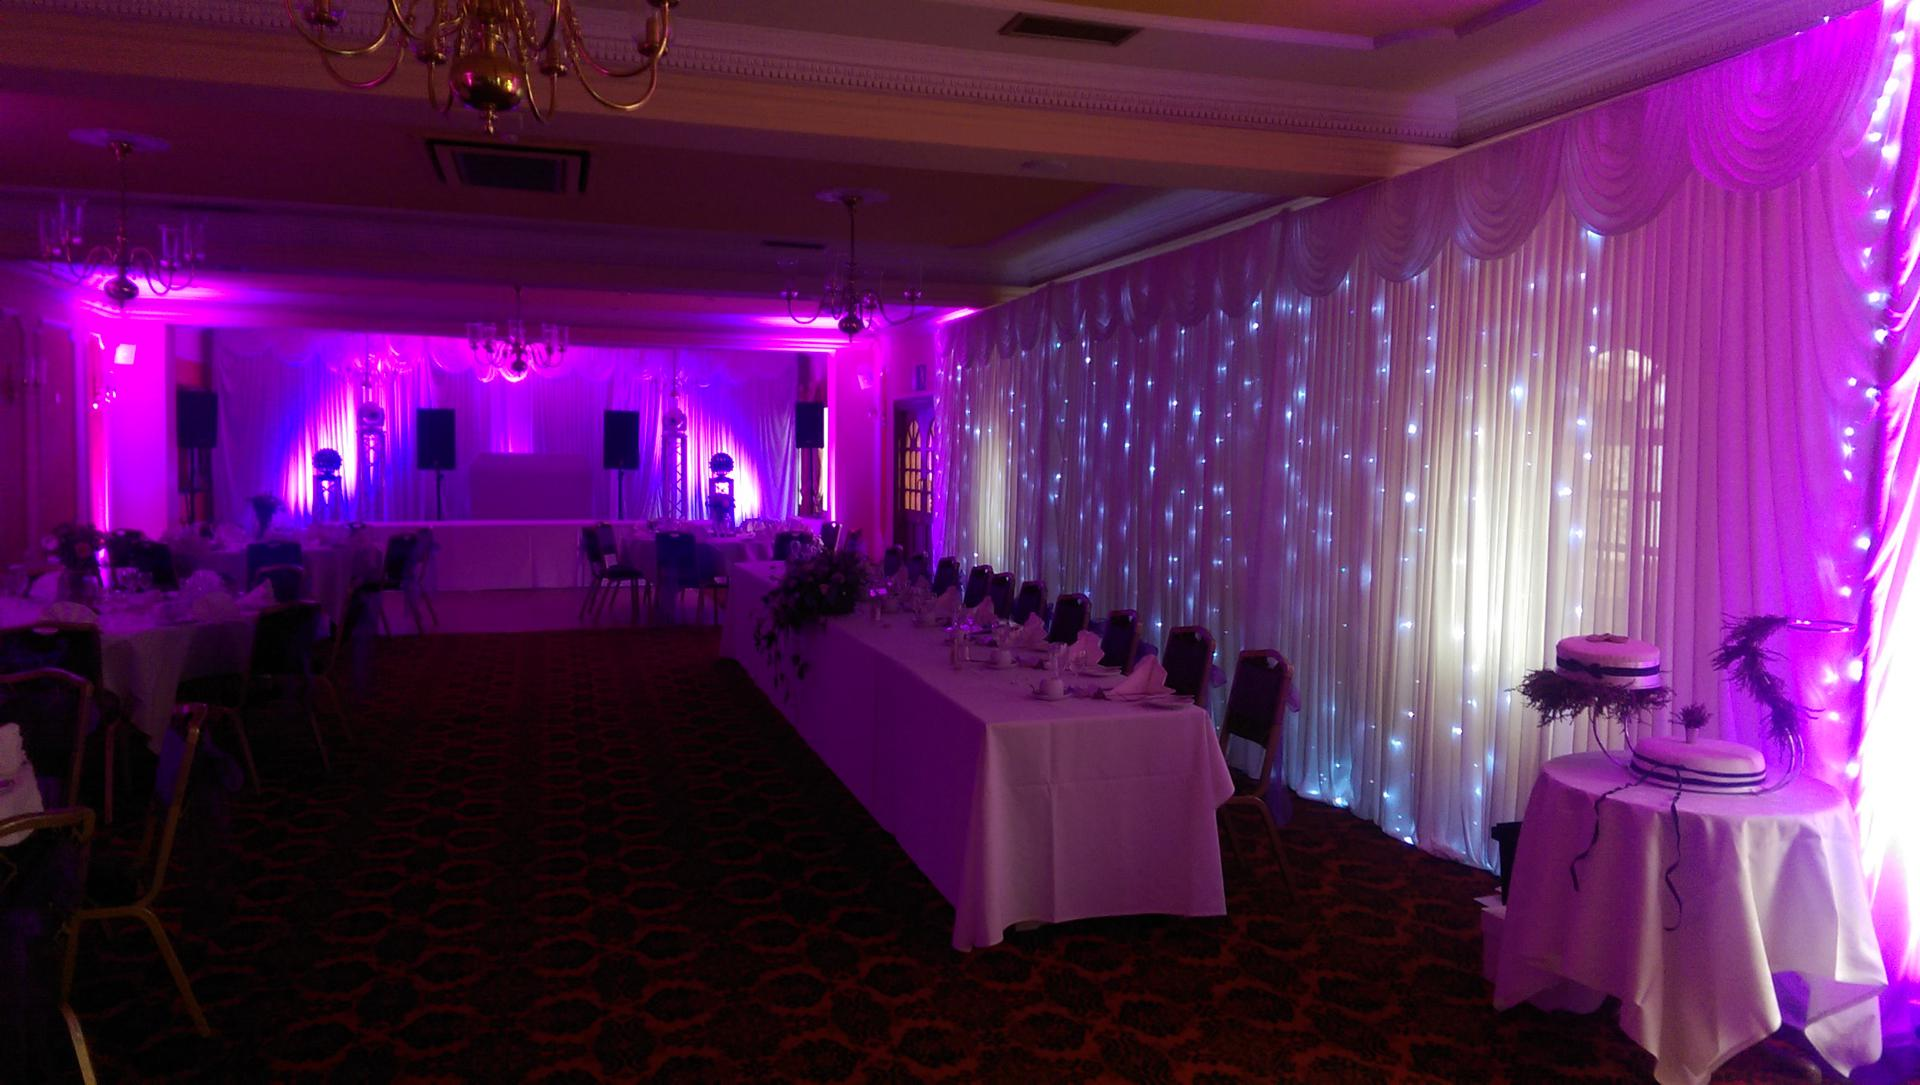 Obsession_entertainment_wedding_photography_wedding_dj_wedding_disco_drapes_lighting_equipment_higher_childrens_party-0021